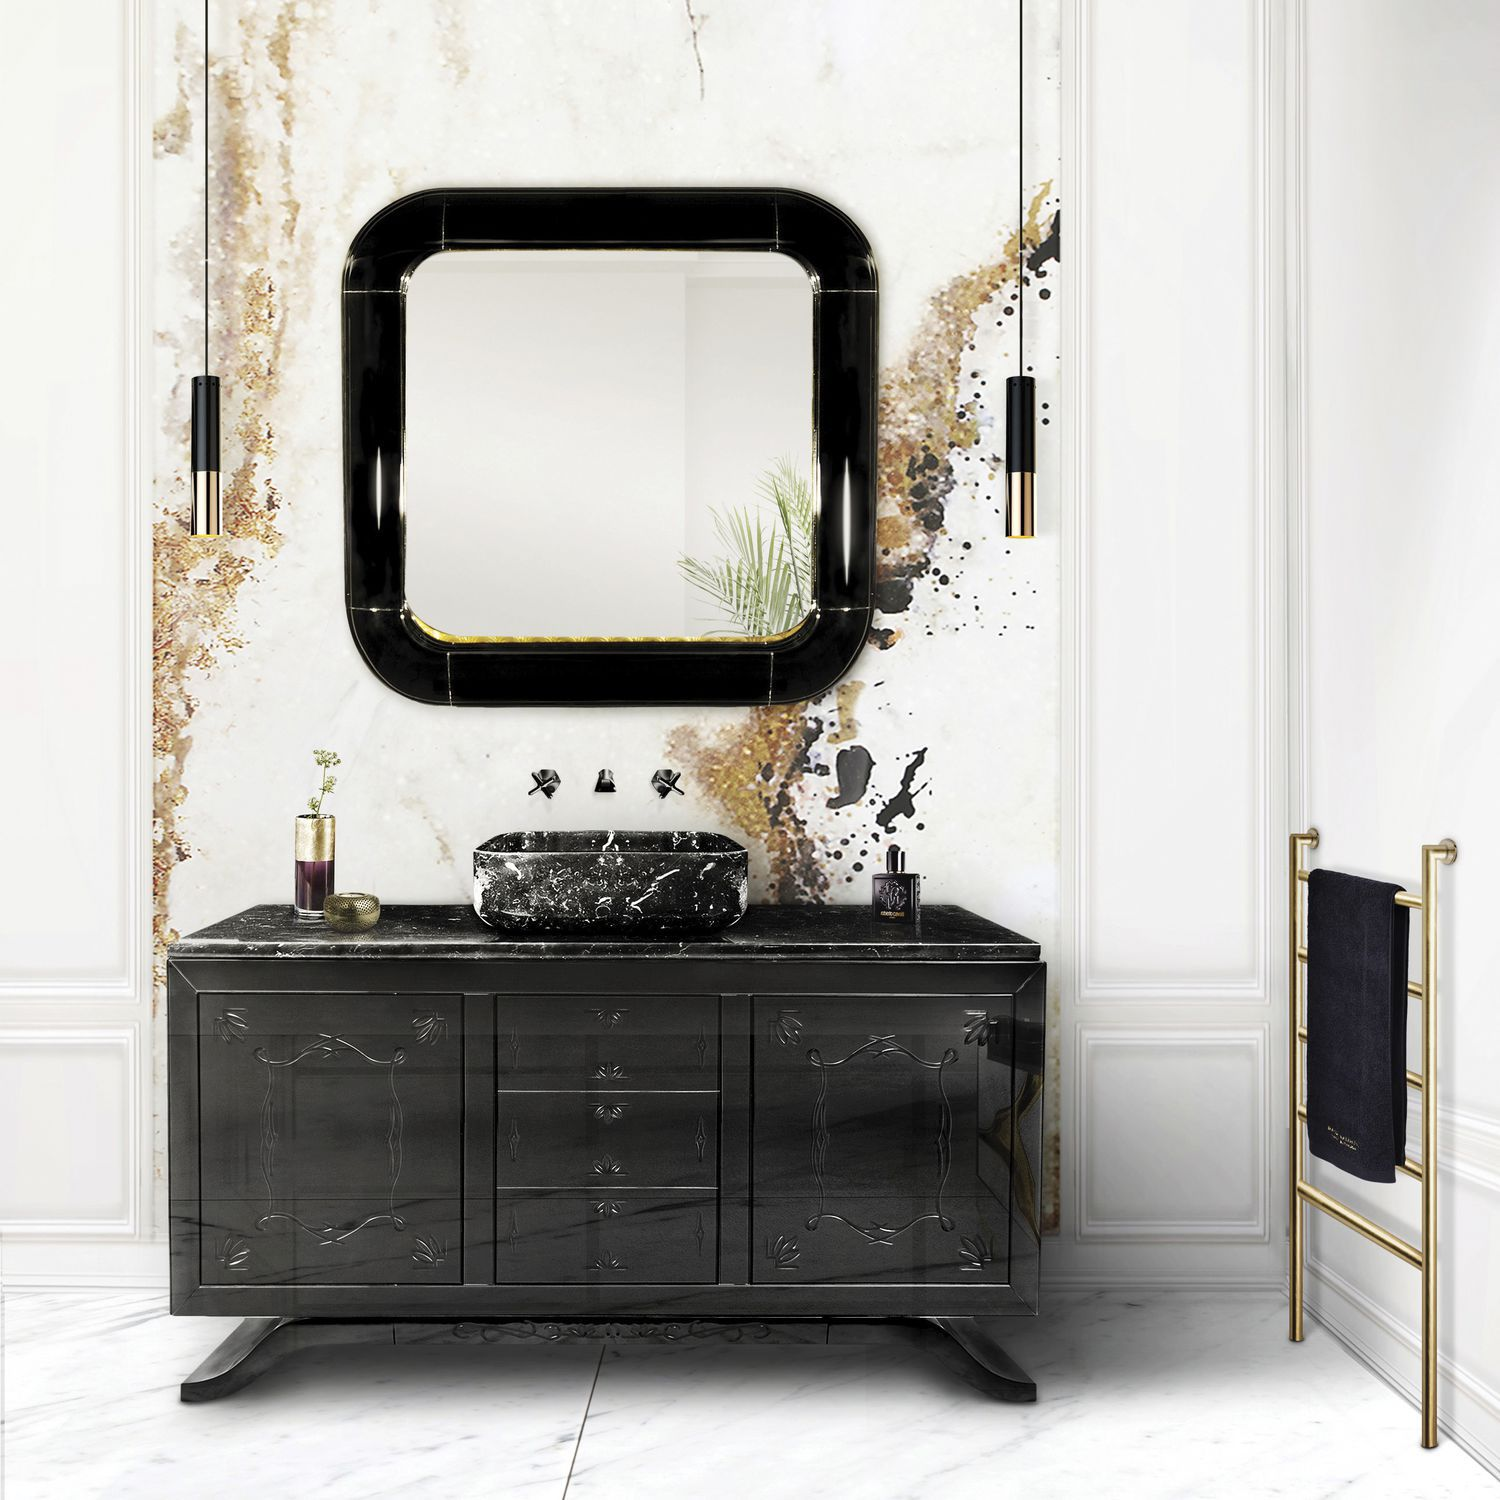 Wall-mounted mirror / living room / bedroom / contemporary - RING ...